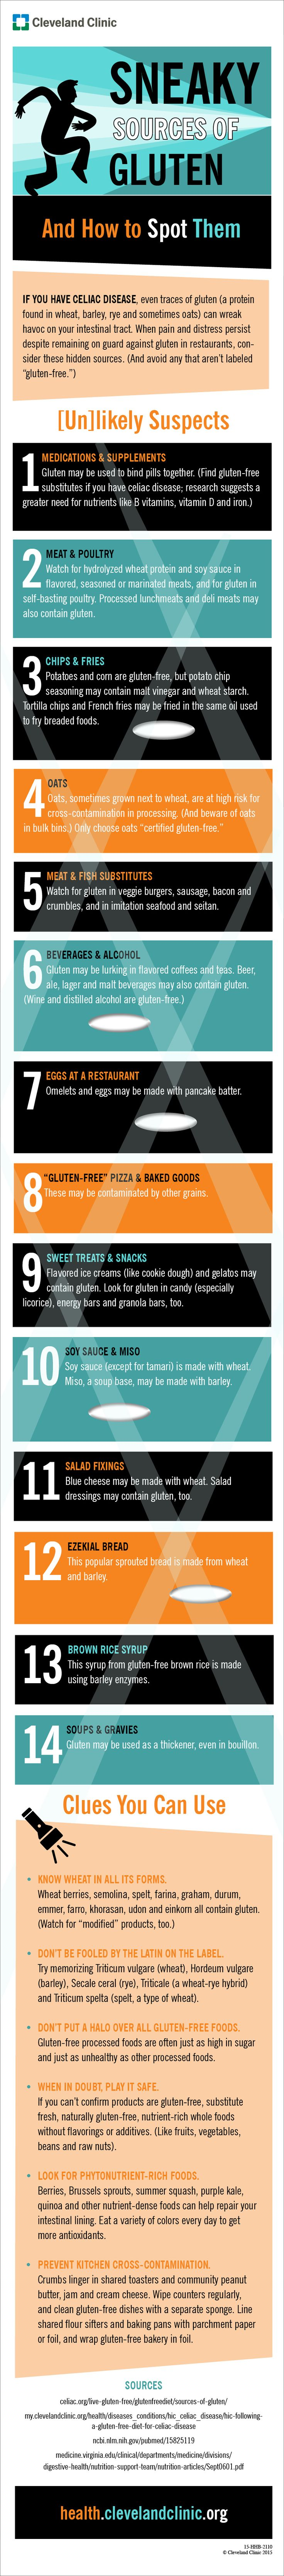 10 sneaky sources of gluten to watch out for. #infographic